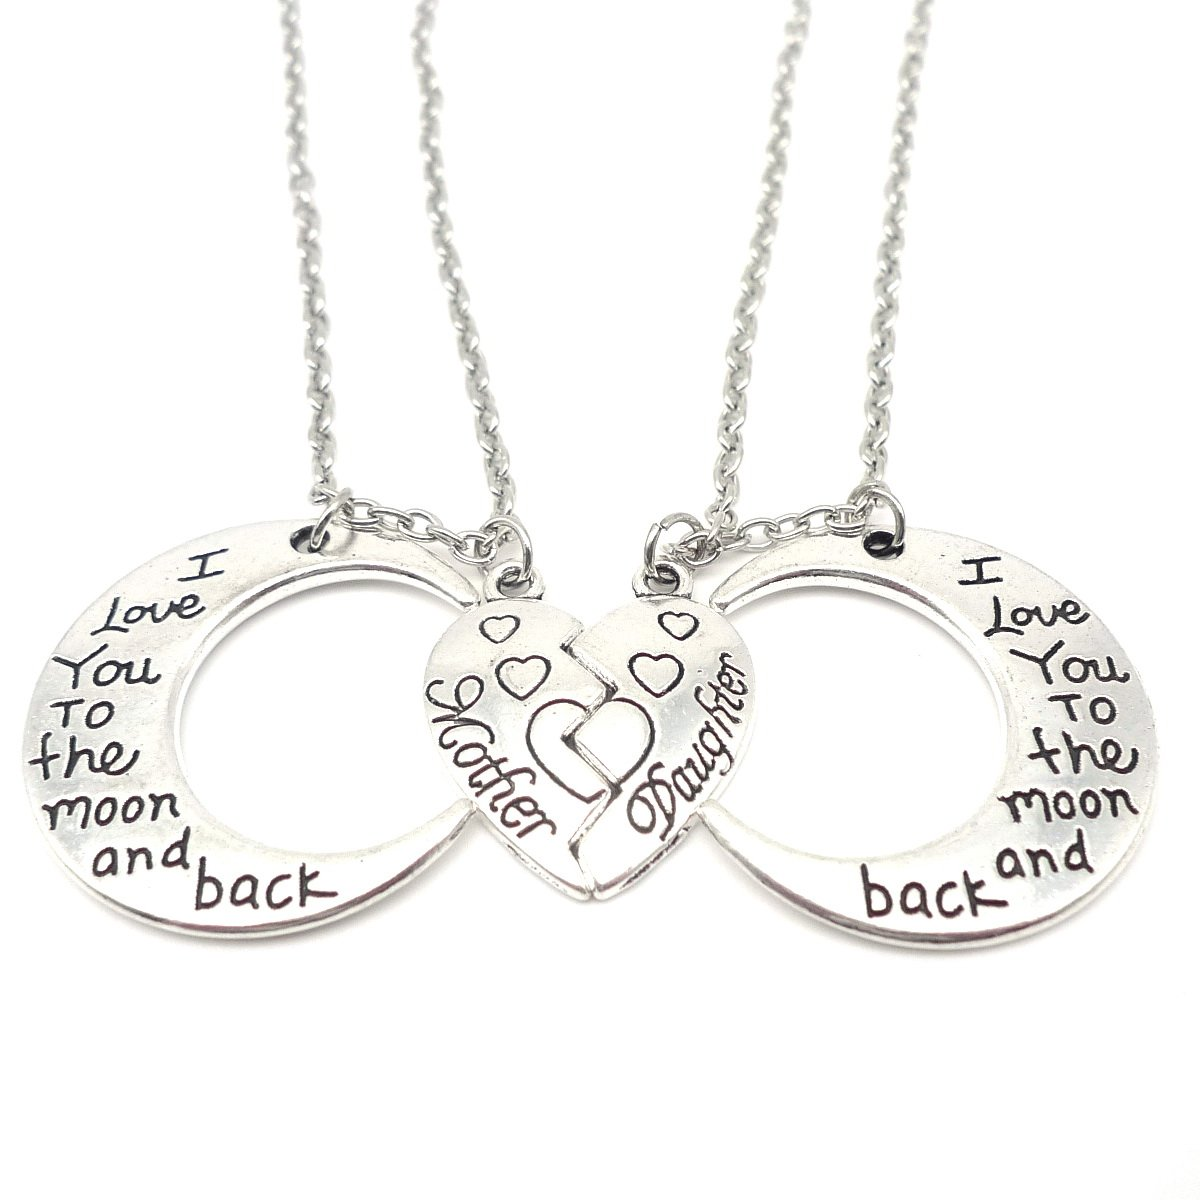 I Love You to the Moon and Back Mother Daughter Moon Love Heart Necklace Pendant 2PC,Mother and Daughter Holiday Gifts